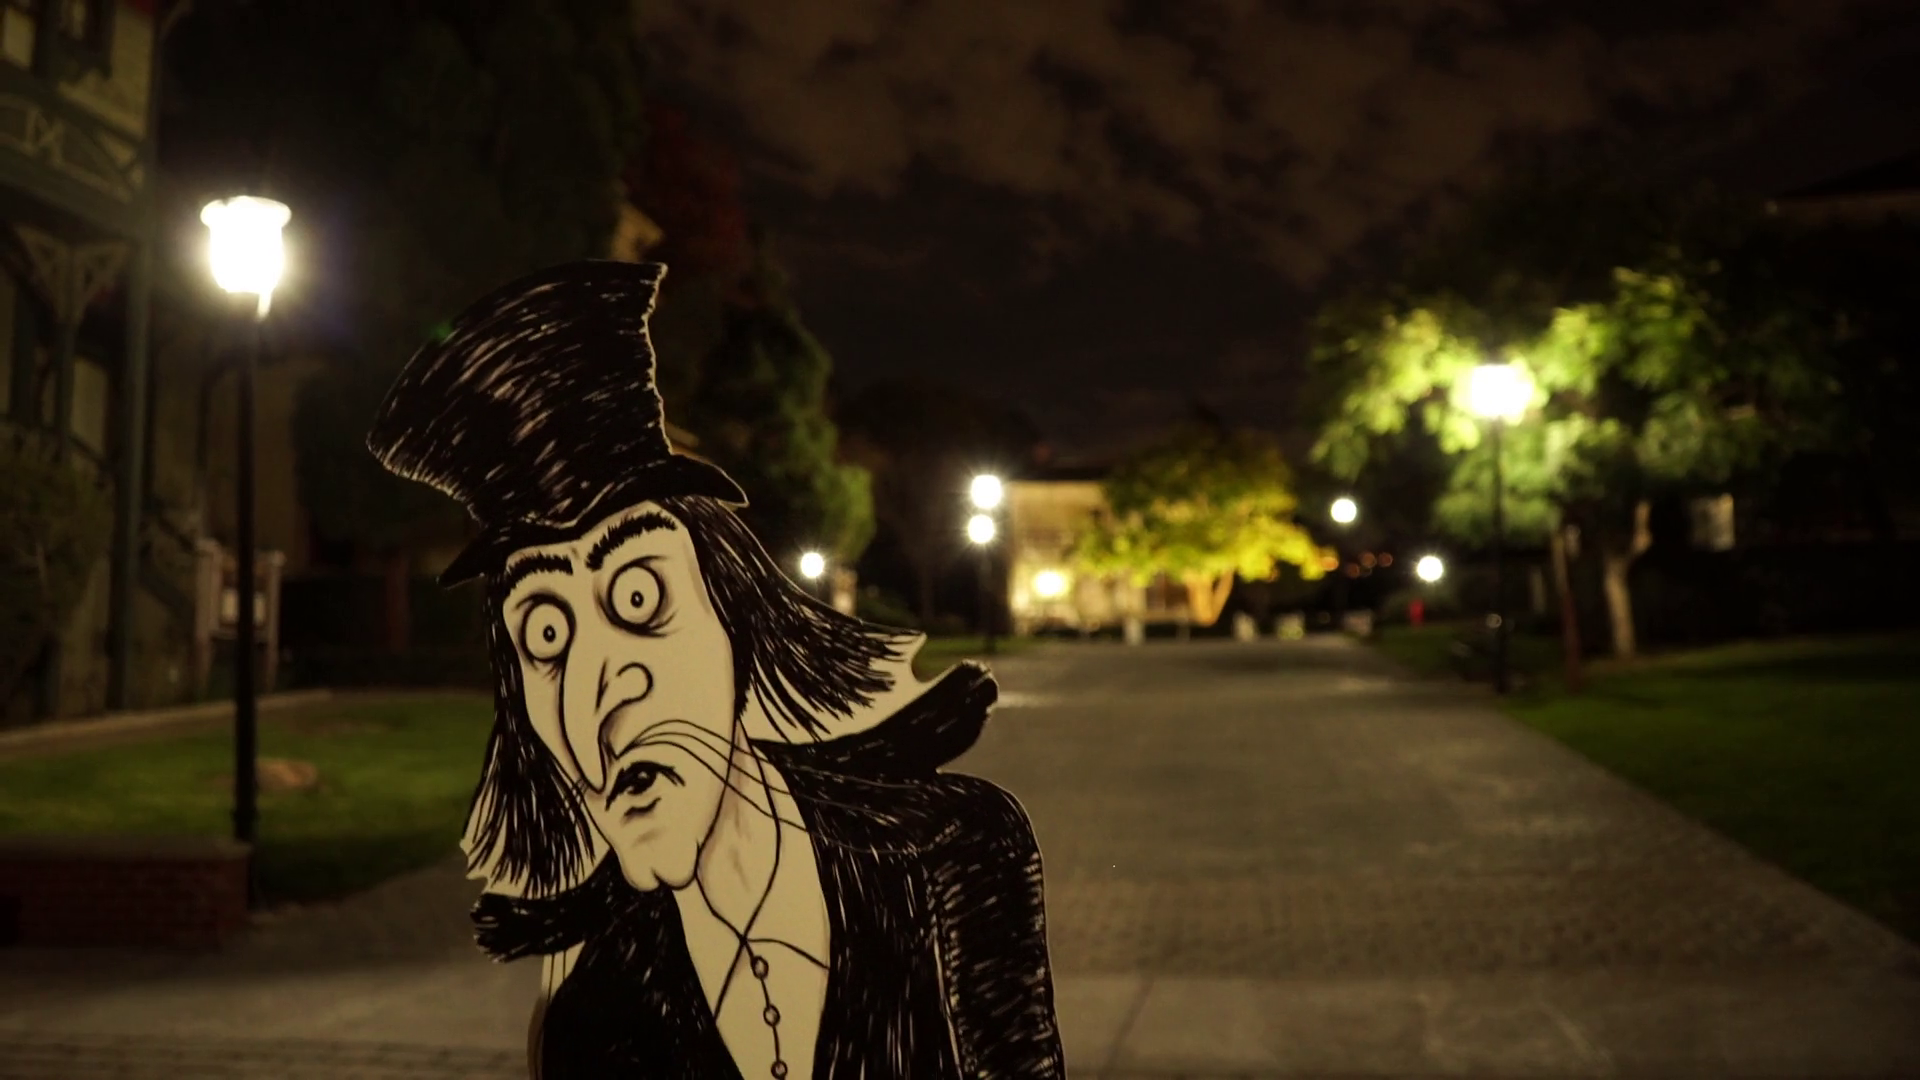 Mister Snark Lurking In A Victorian House Neighborhood